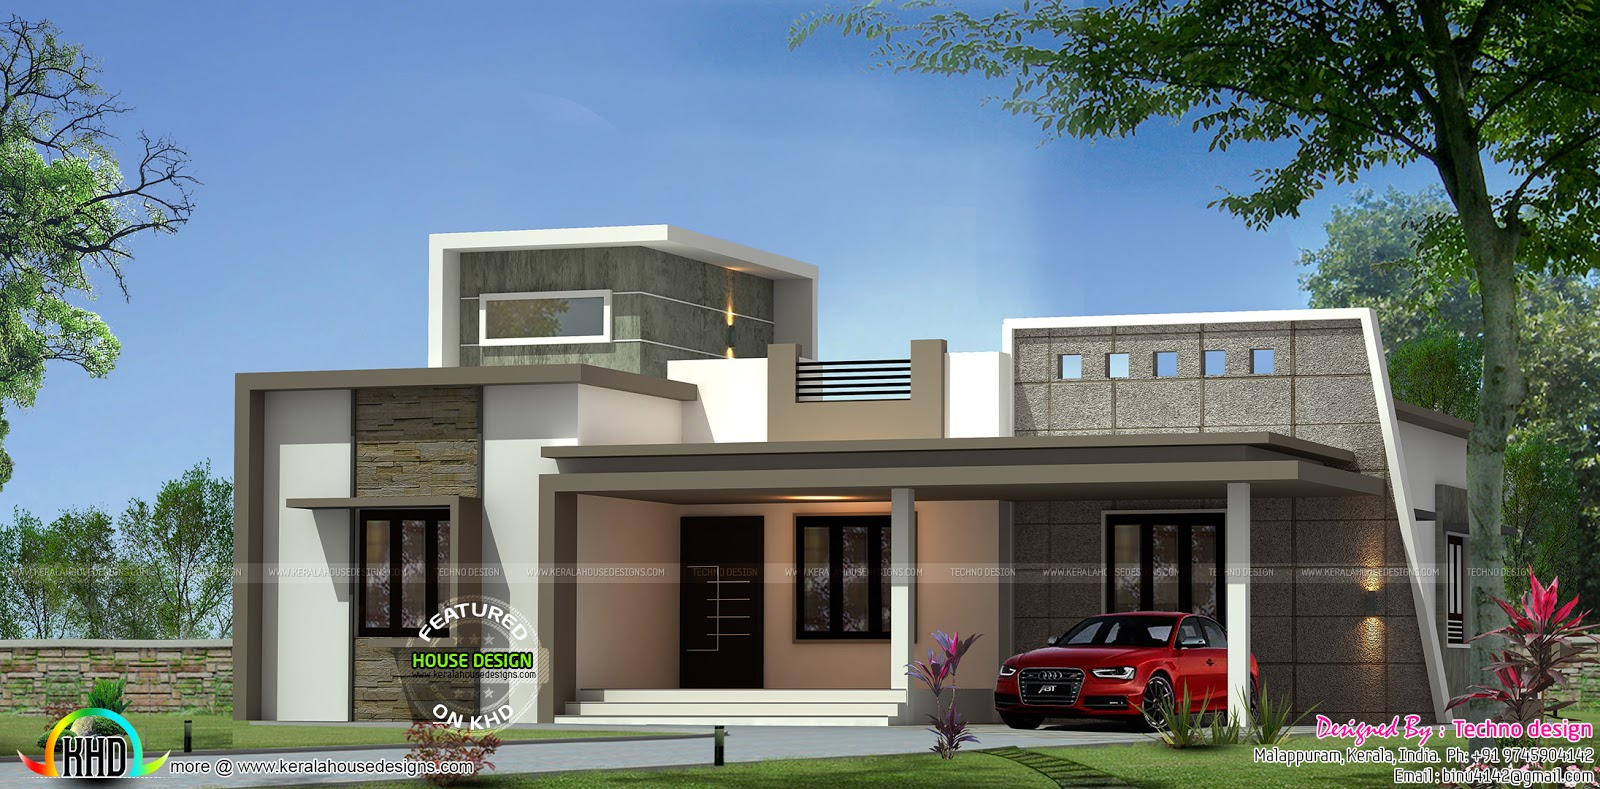 March 2017 kerala home design and floor plans Modern house 1 floor